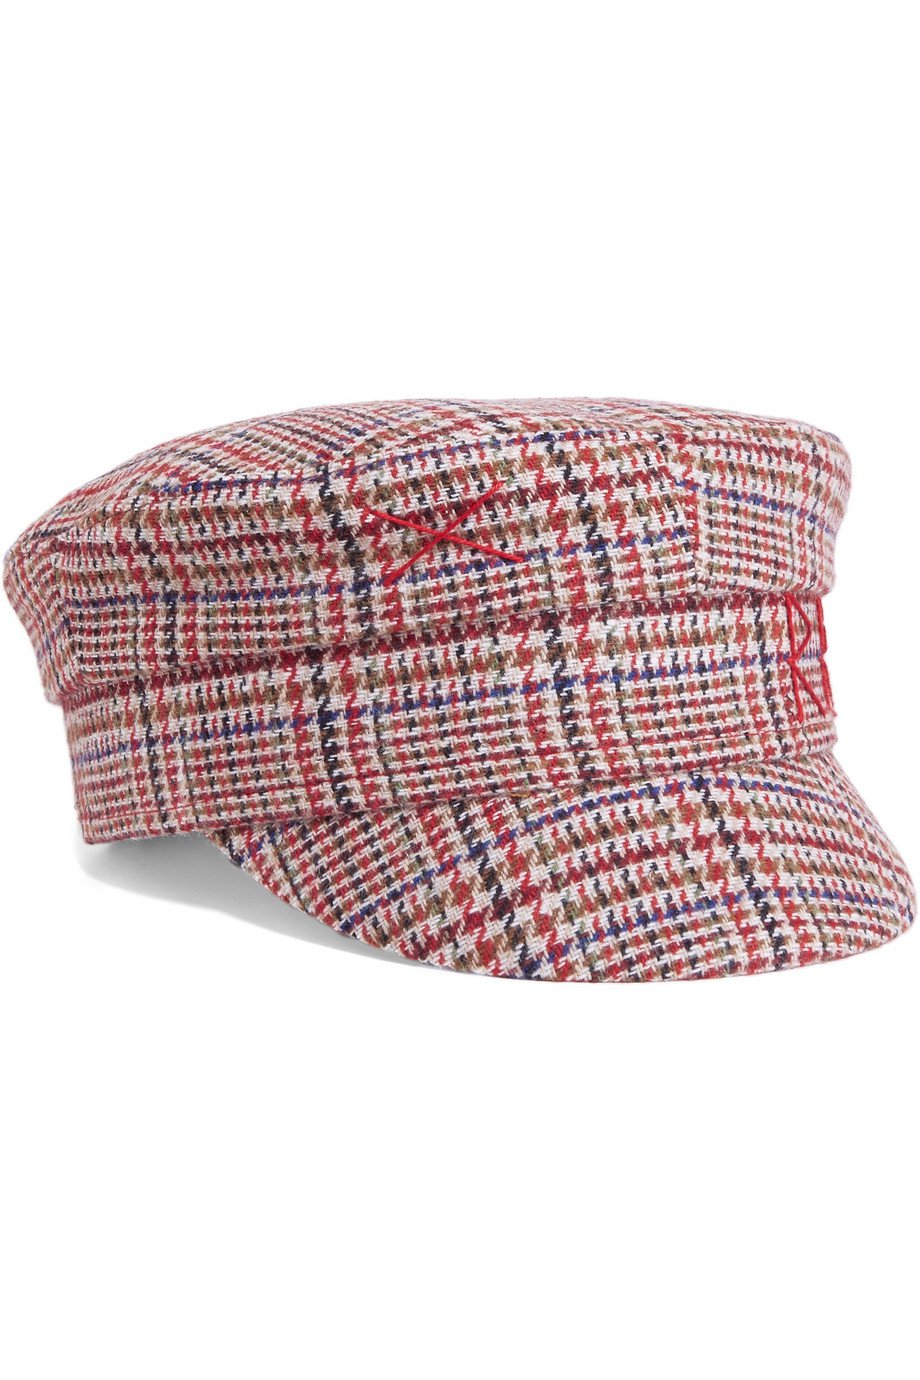 Ruslan Baginskiy | Embroidered Prince of Wales checked wool cap | NET-A-PORTER.COM